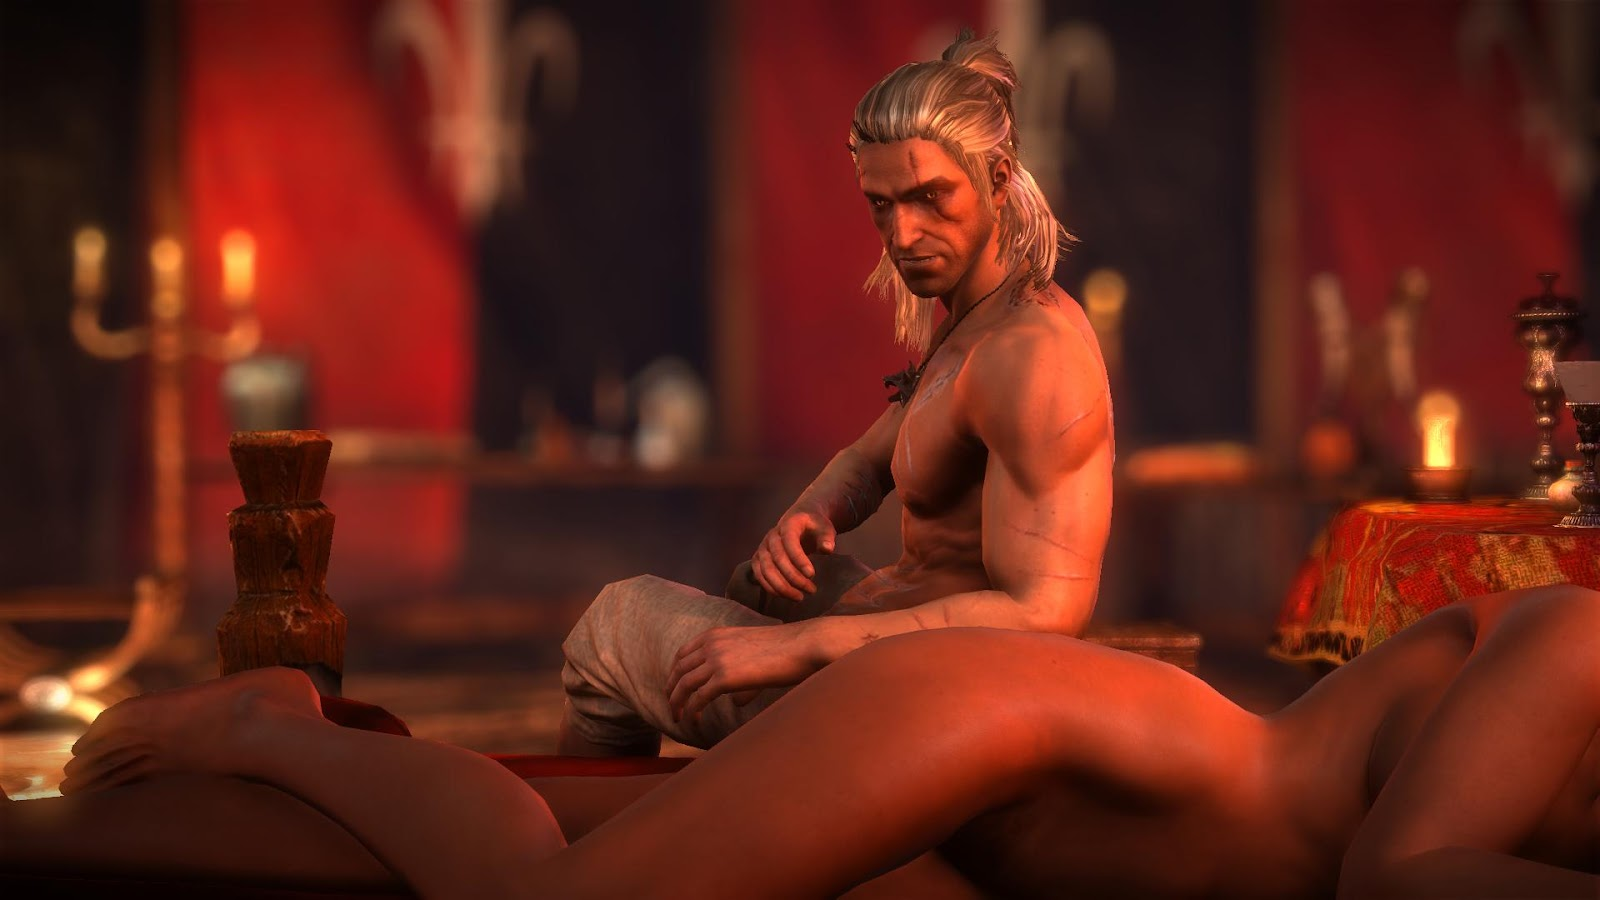 Witcher sex scene erotic image